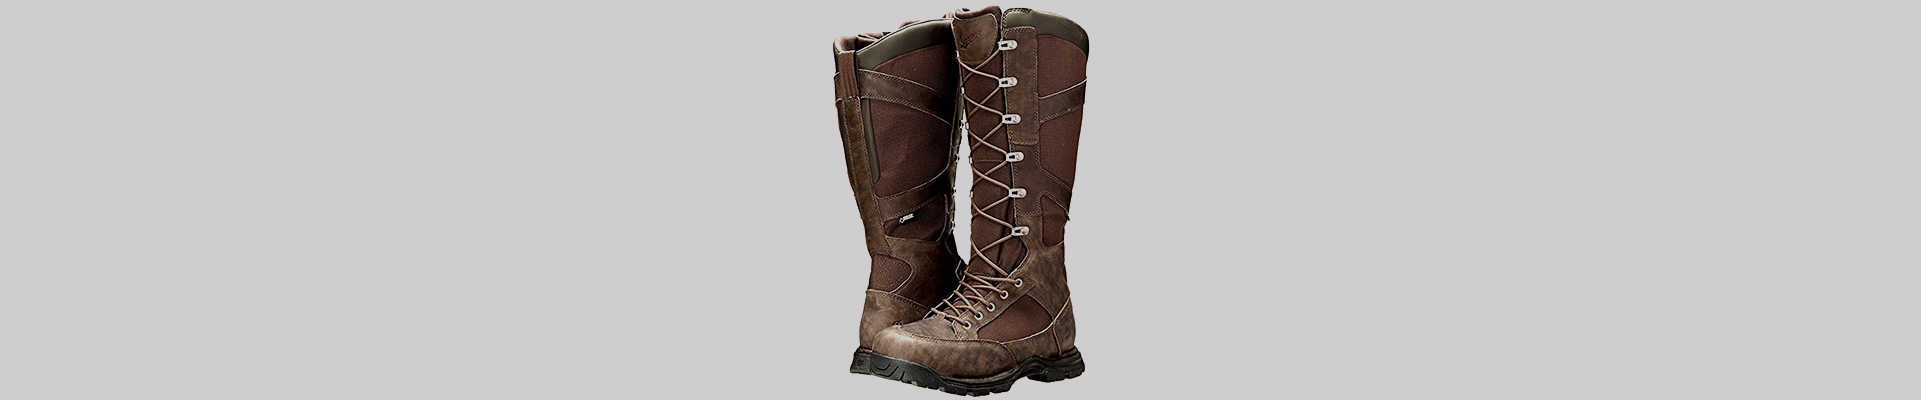 Danner Pronghorn Snake Boots Review Insulated Hunting Boots